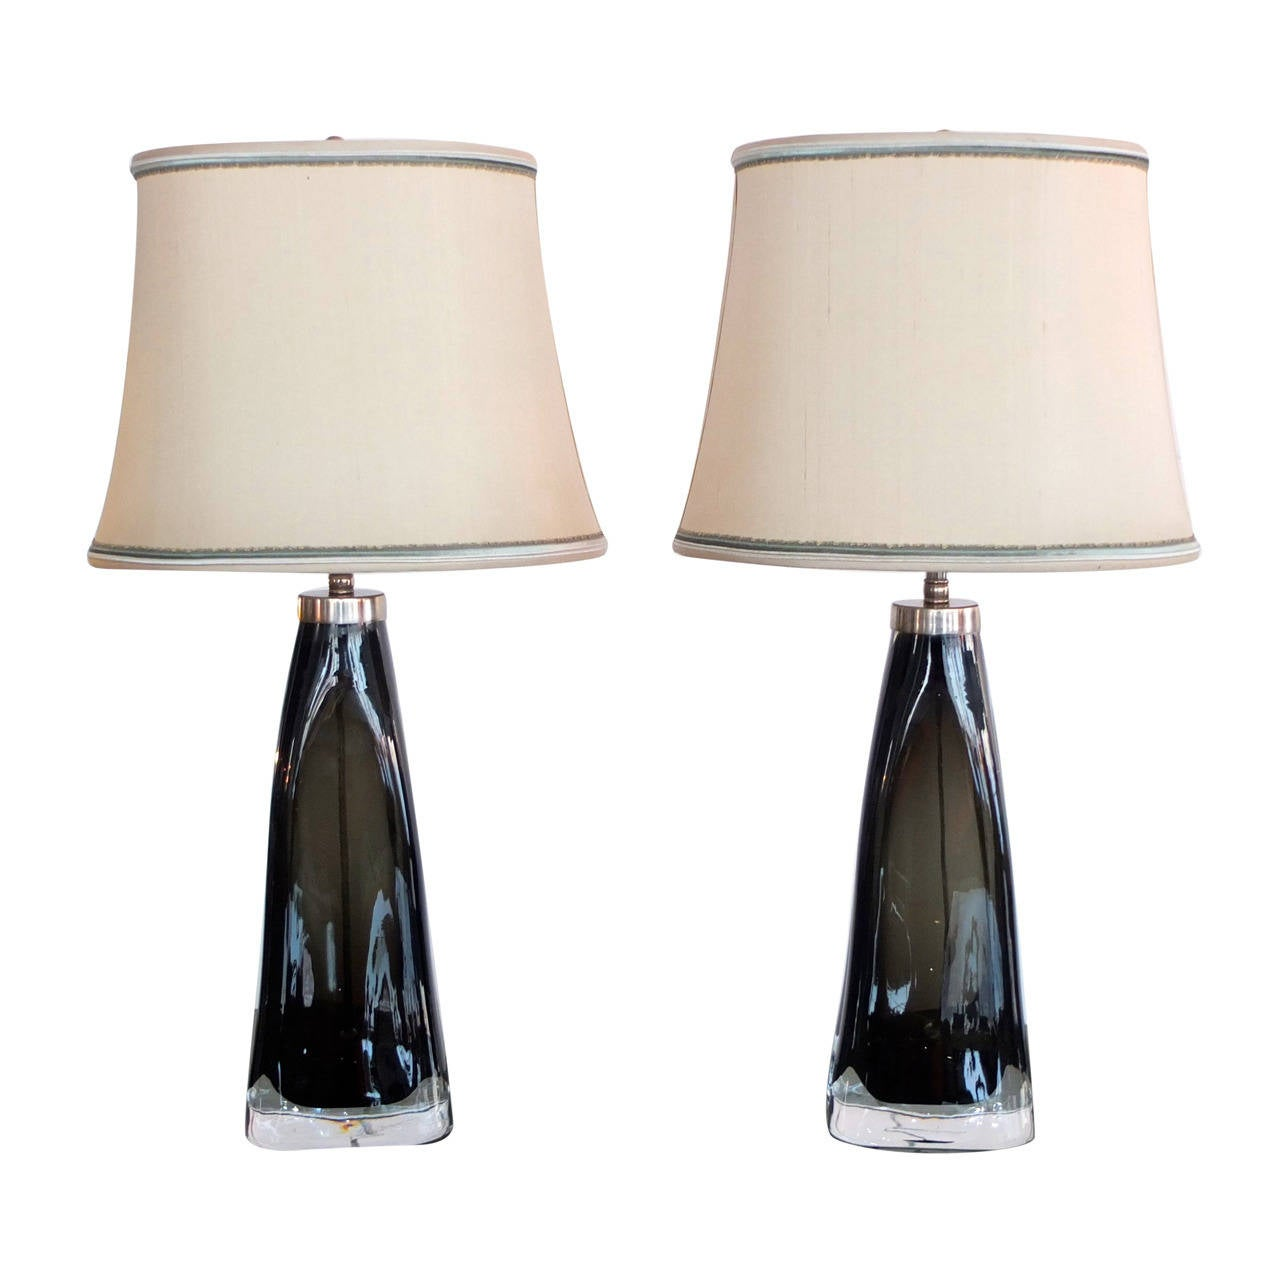 Pair of Smoked Glass Lamps by Carl Fagerlund for Orrefors, Sweden